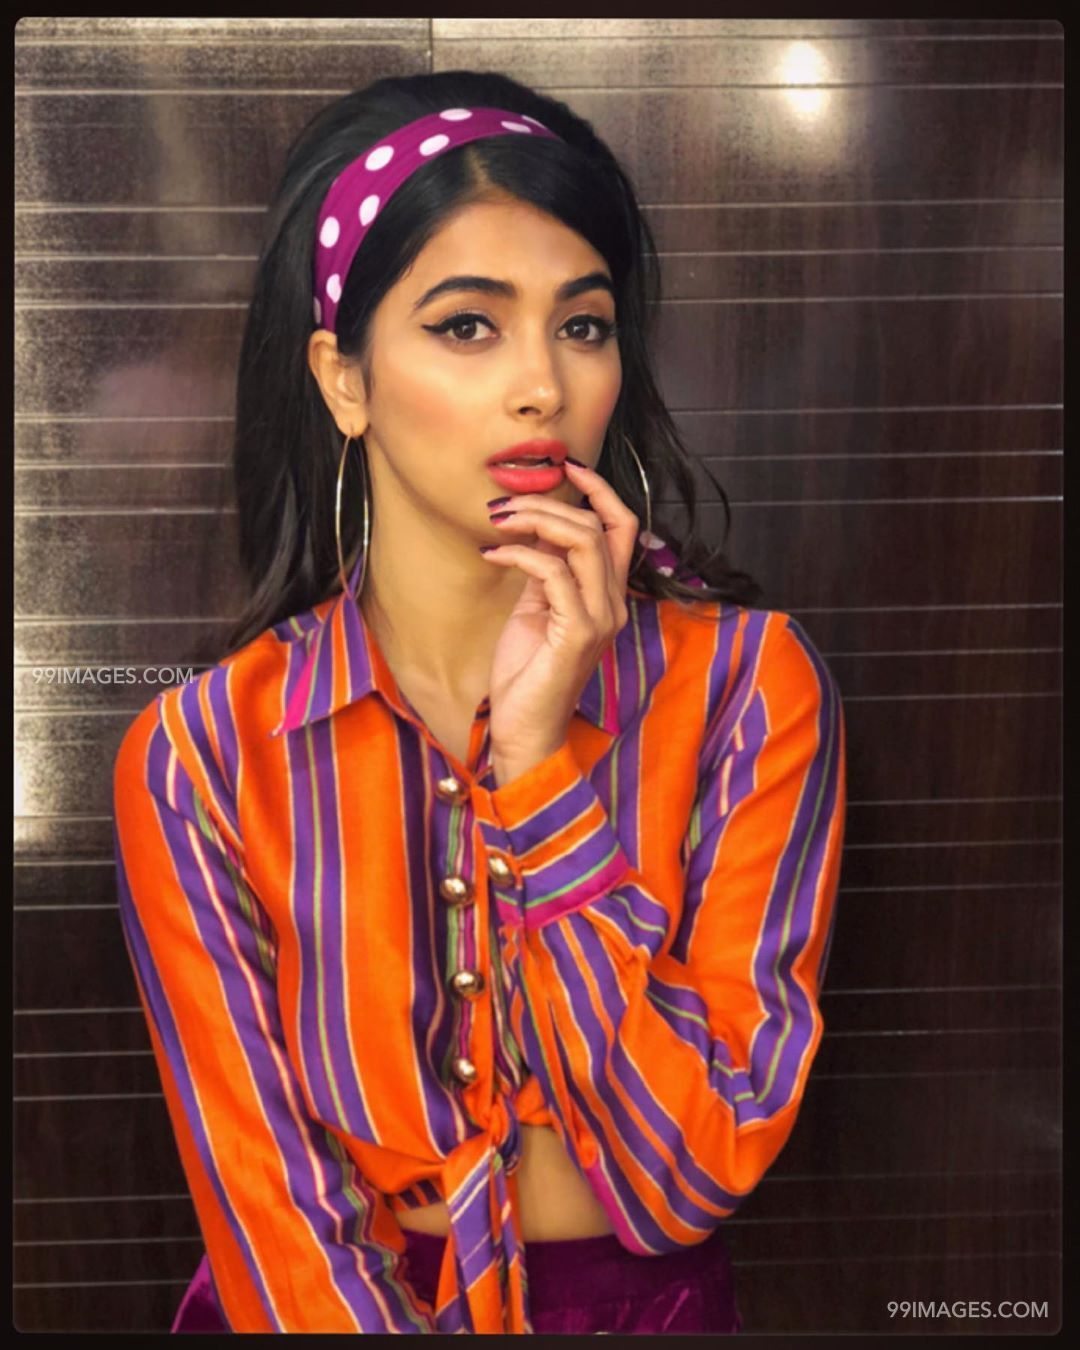 Pooja Hegde Hot Beautiful HD Photos / Wallpapers, WhatsApp DP (1080p) (31277) - Pooja Hegde